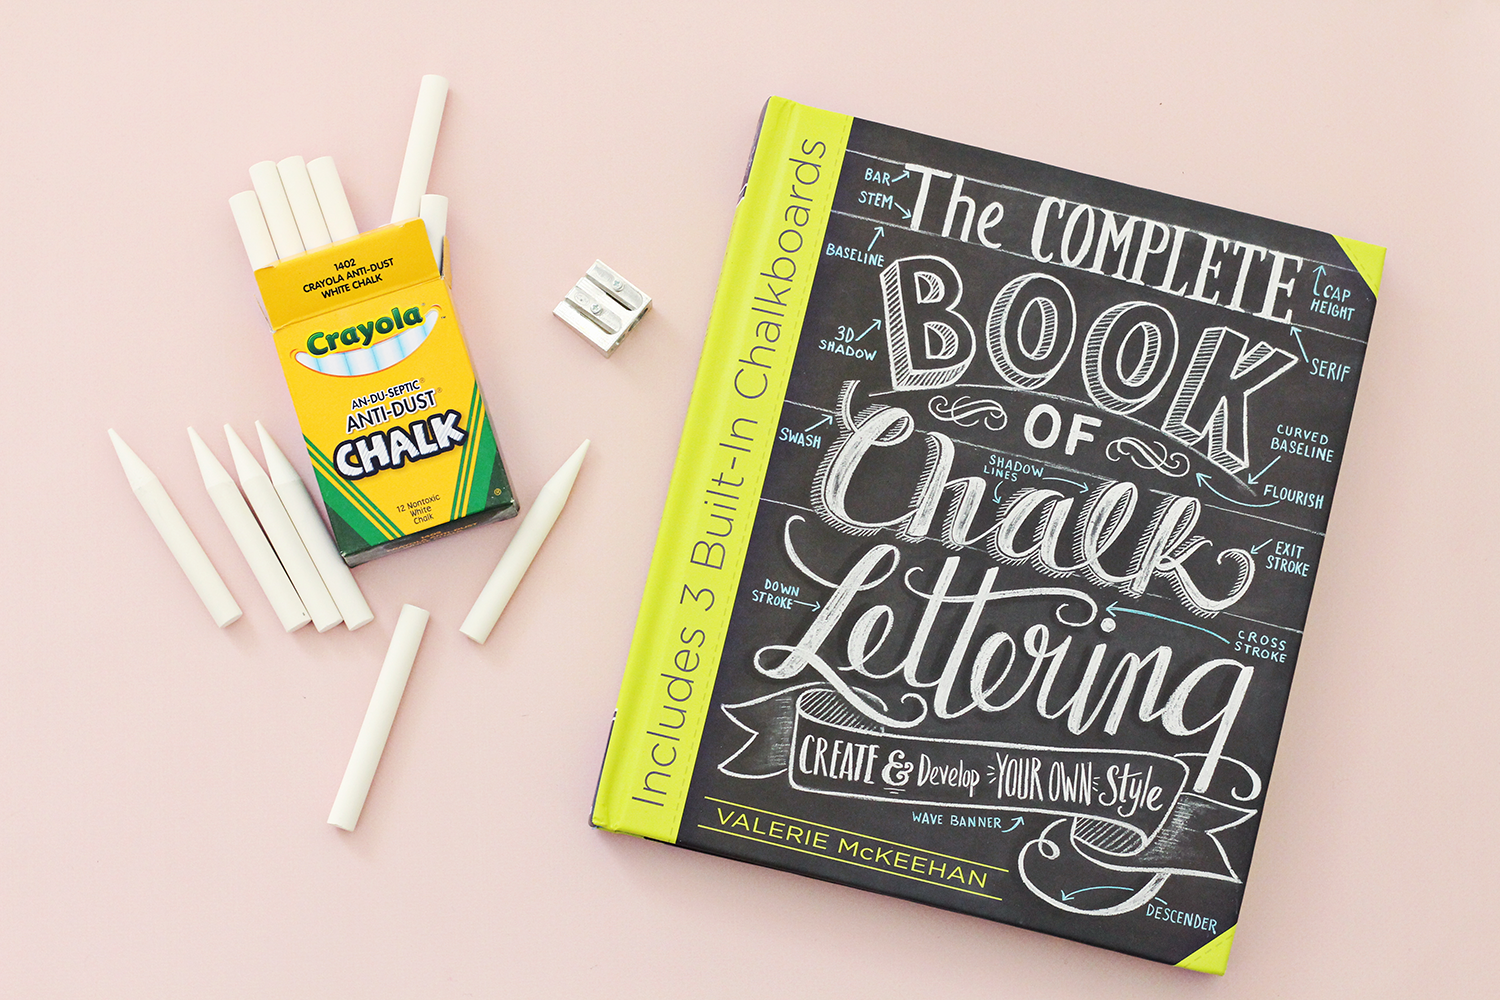 Crayola Anti-Dust Chalk is the recommended chalk in The Complete Book of Chalk Lettering by Valerie McKeehan